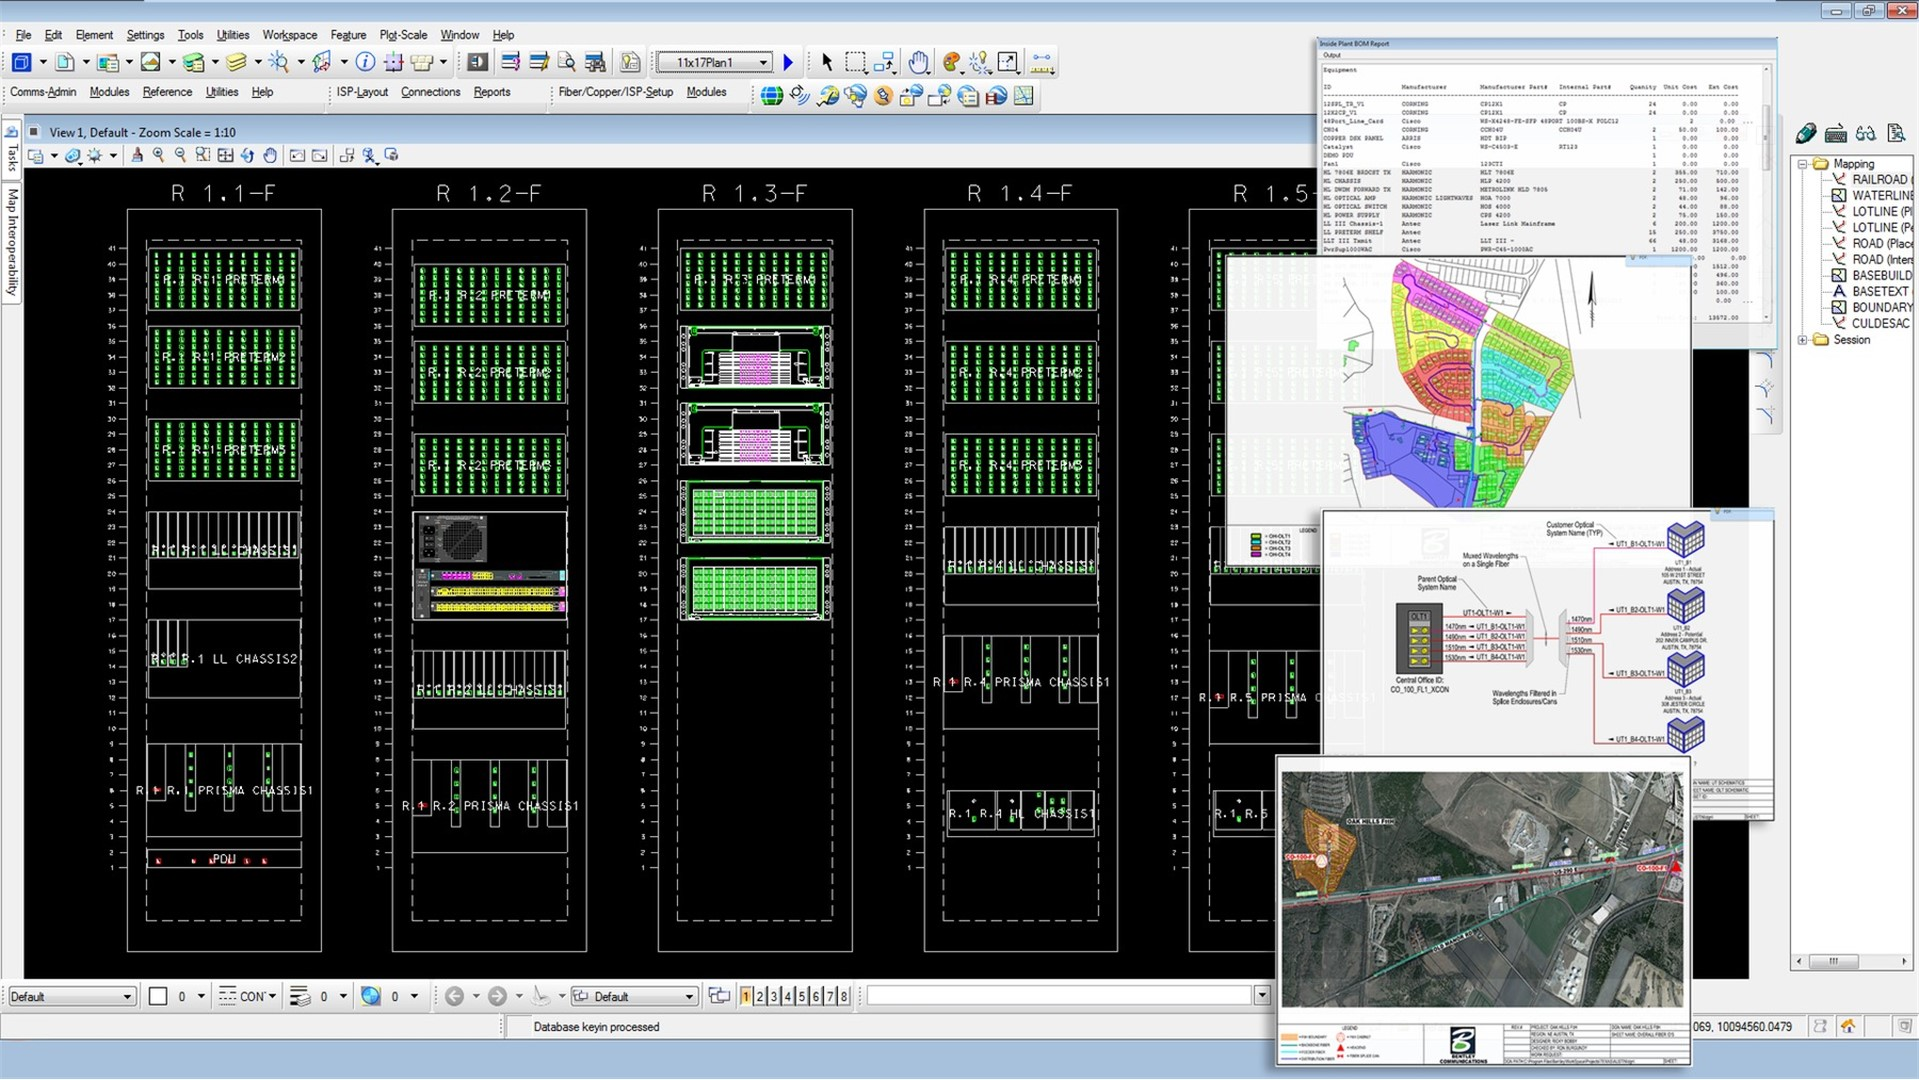 Fiber Network Design and GIS Software - Bentley Fiber